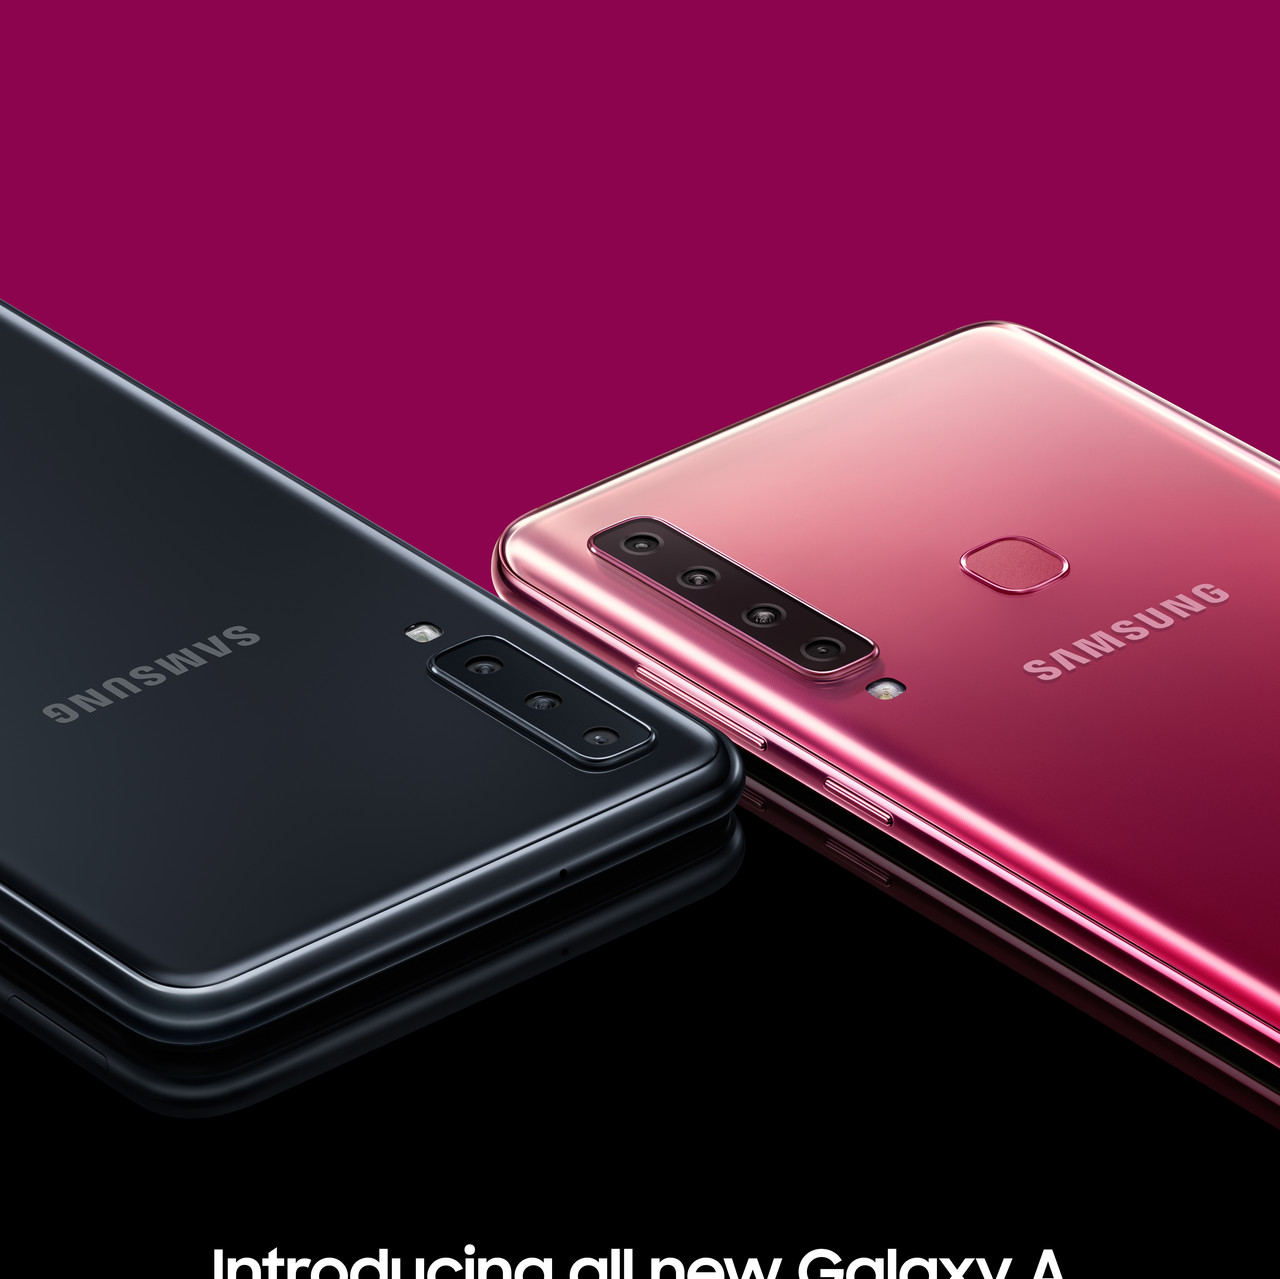 Galaxy A7 Black & A9 Bubblegum Pink - Co